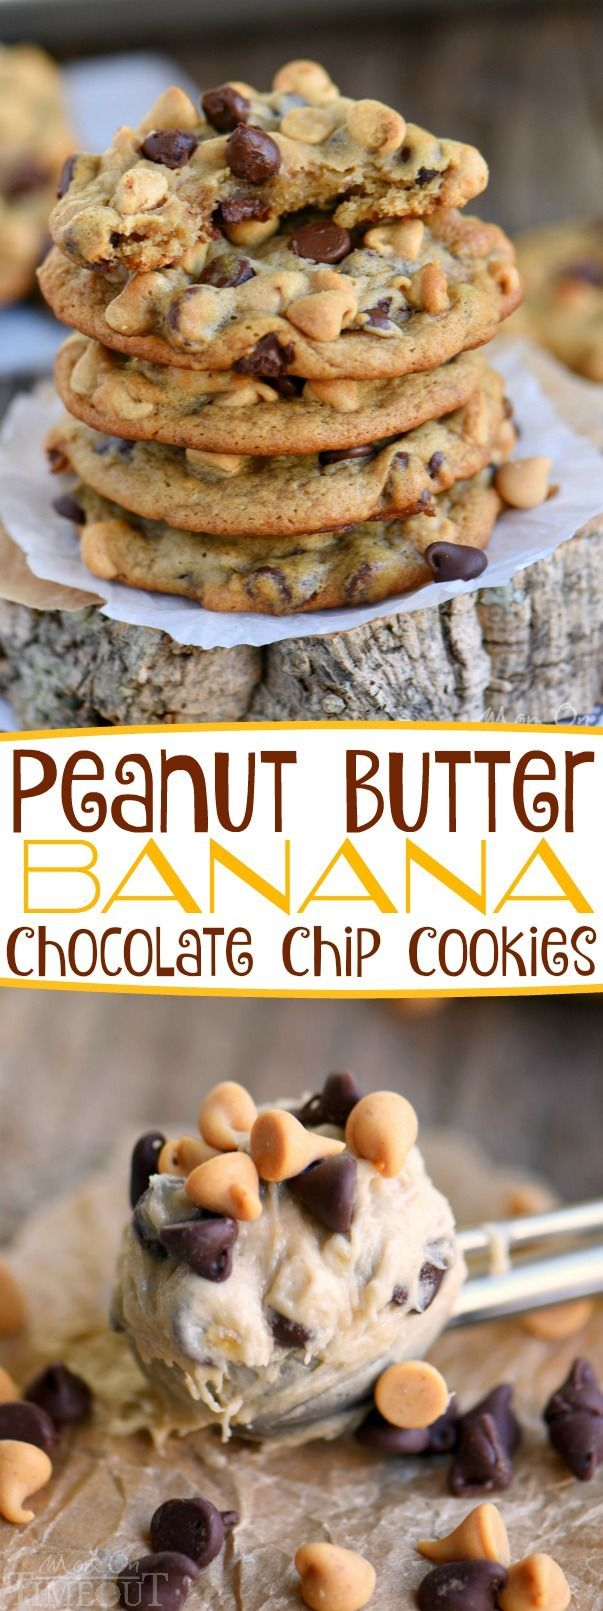 Got ripe bananas? These easy Peanut Butter Banana Chocolate Chip Cookies are WAY more fun than making banana bread and so delicious too! Super soft and absolutely amazing! // Mom On Timeout(Chocolate Cake Cookies)